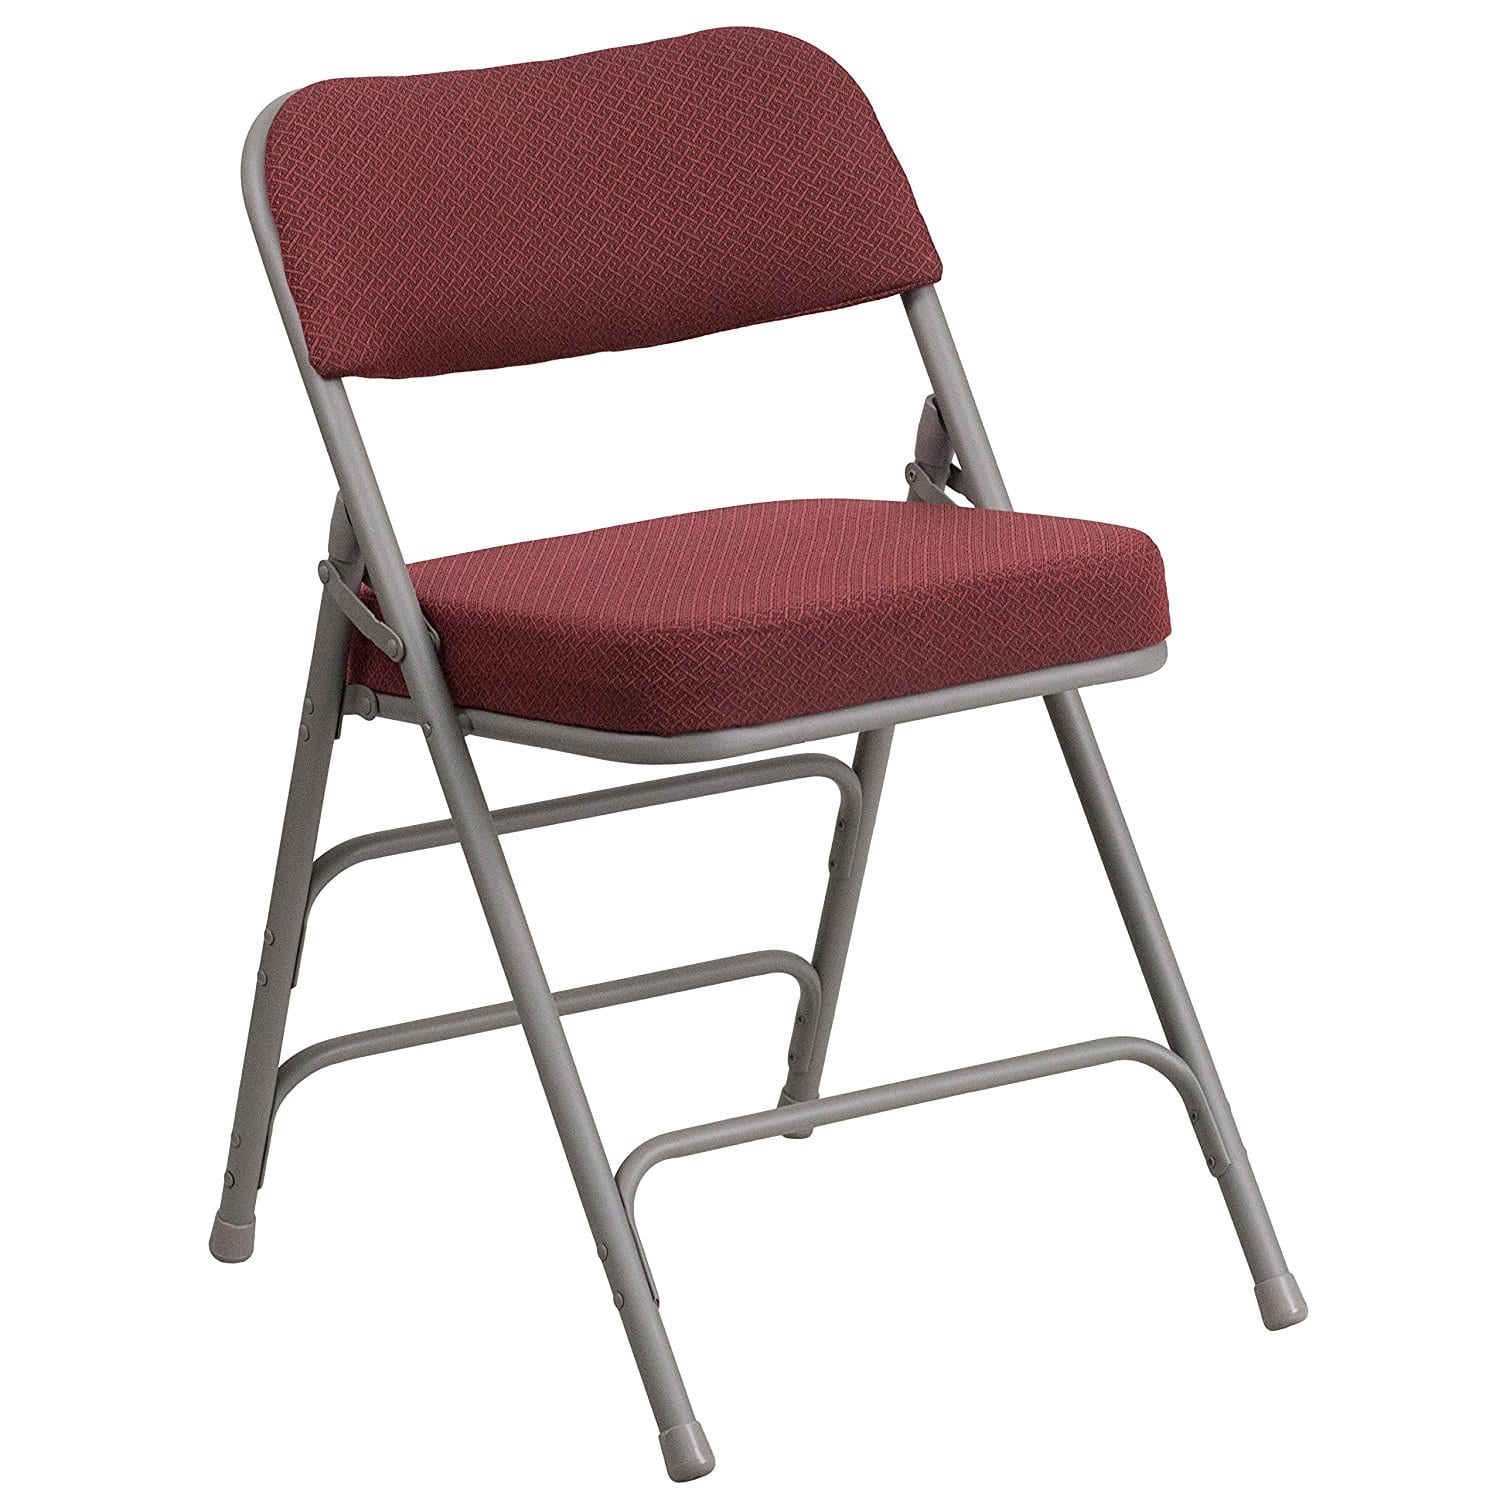 Fancy Padded Folding Chair 12 83 Shipped